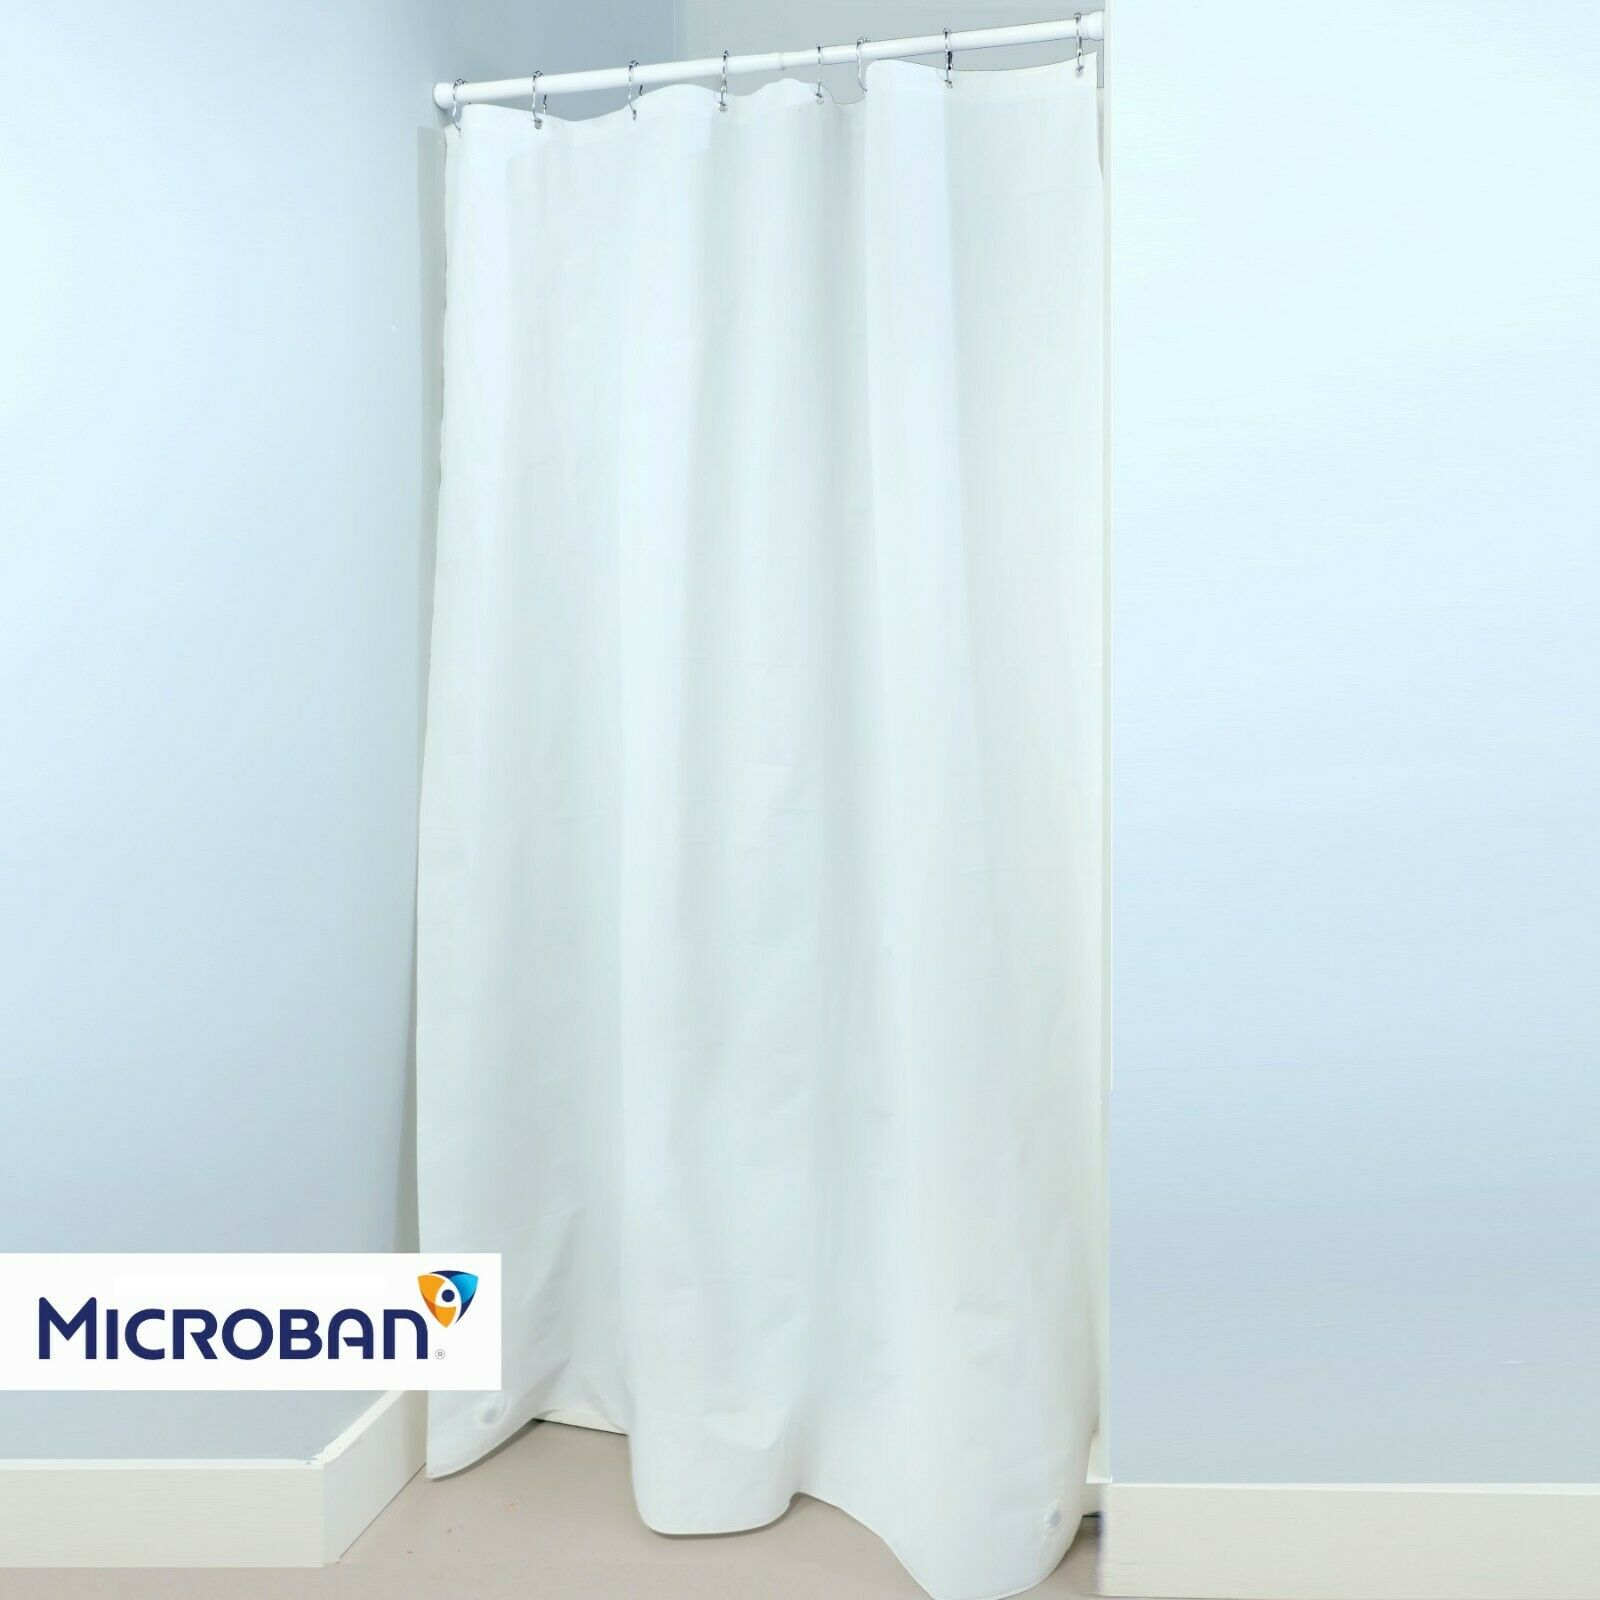 54 X 78 Heavyweight Peva Shower Stall Curtain Liner With Microban 2 Colors For Sale